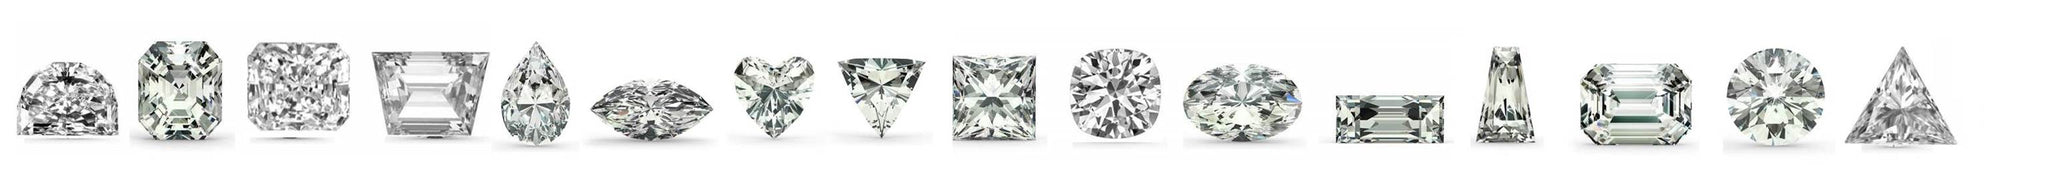 diamond quality loose cubic zirconia gems